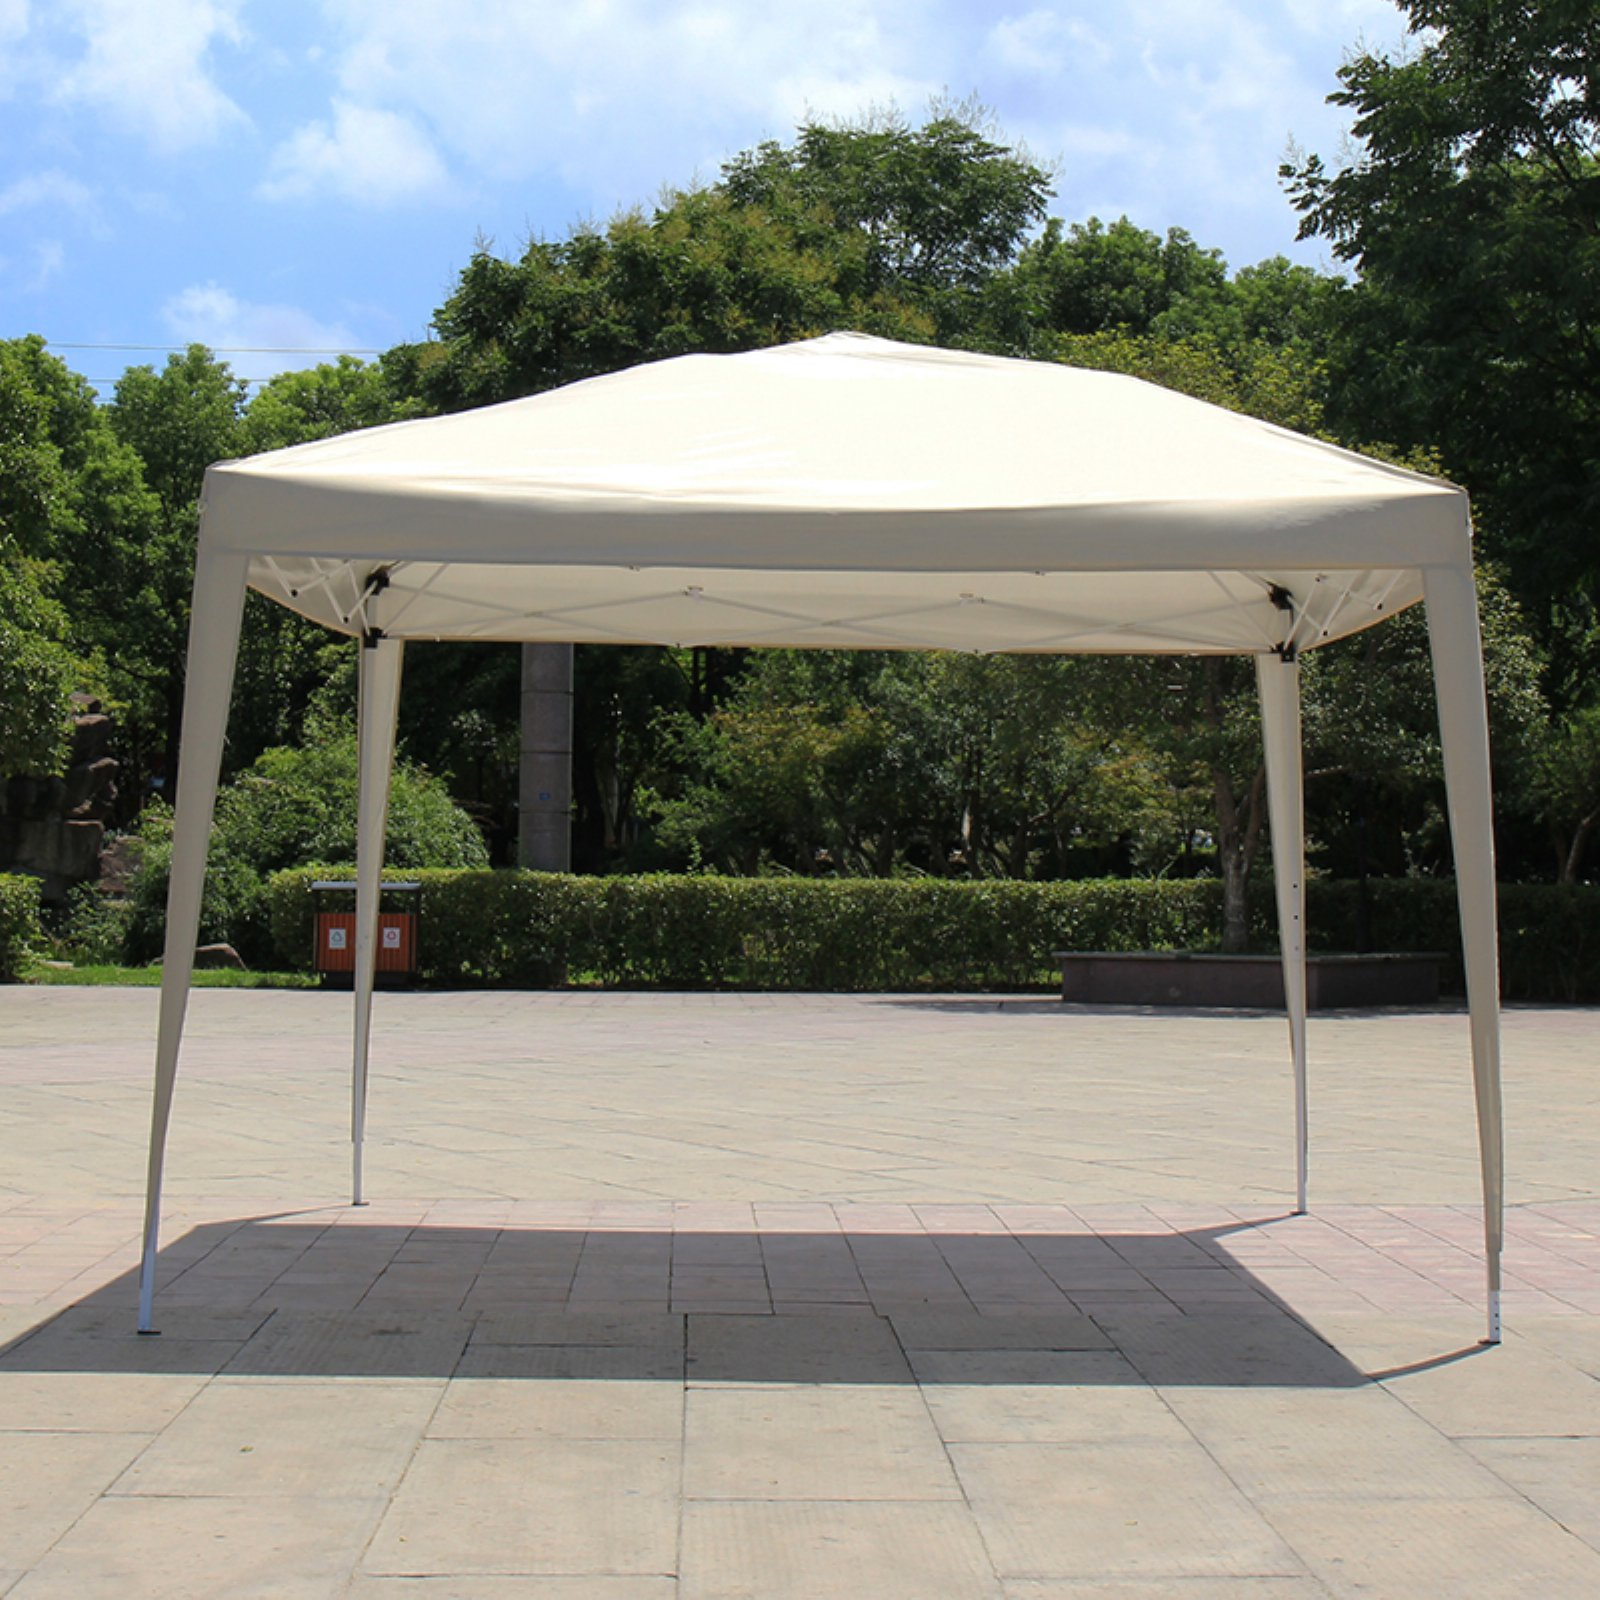 Baner Garden 10 X 10 Ft Easy Folding Instant Pop Up Gazebo Canopy Tent Beige Products In 2019 Gazebo Gazebo Canopy Canopy Tent